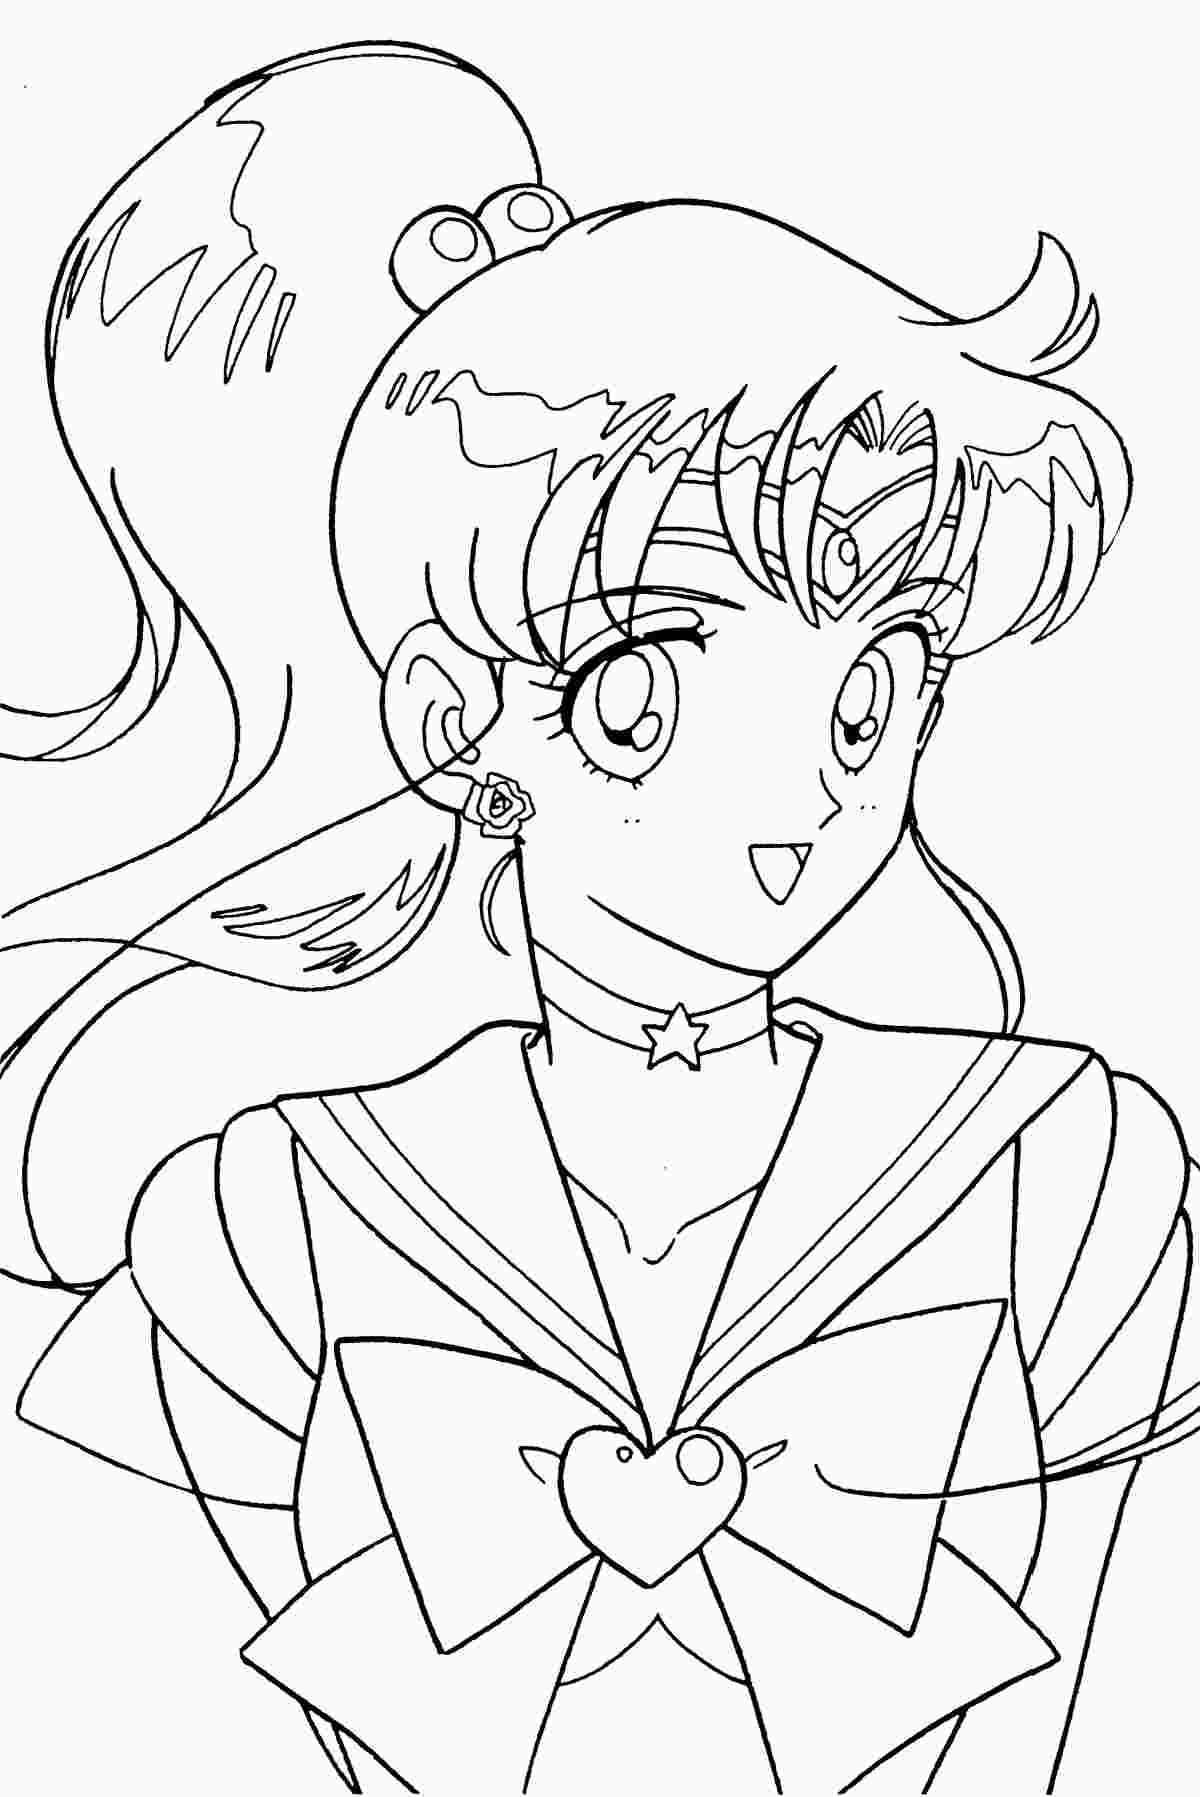 Coloring Sheet Drawings To Color Sailor Moon Coloring Pages Sailor Moon Art Sailor Moon Crafts